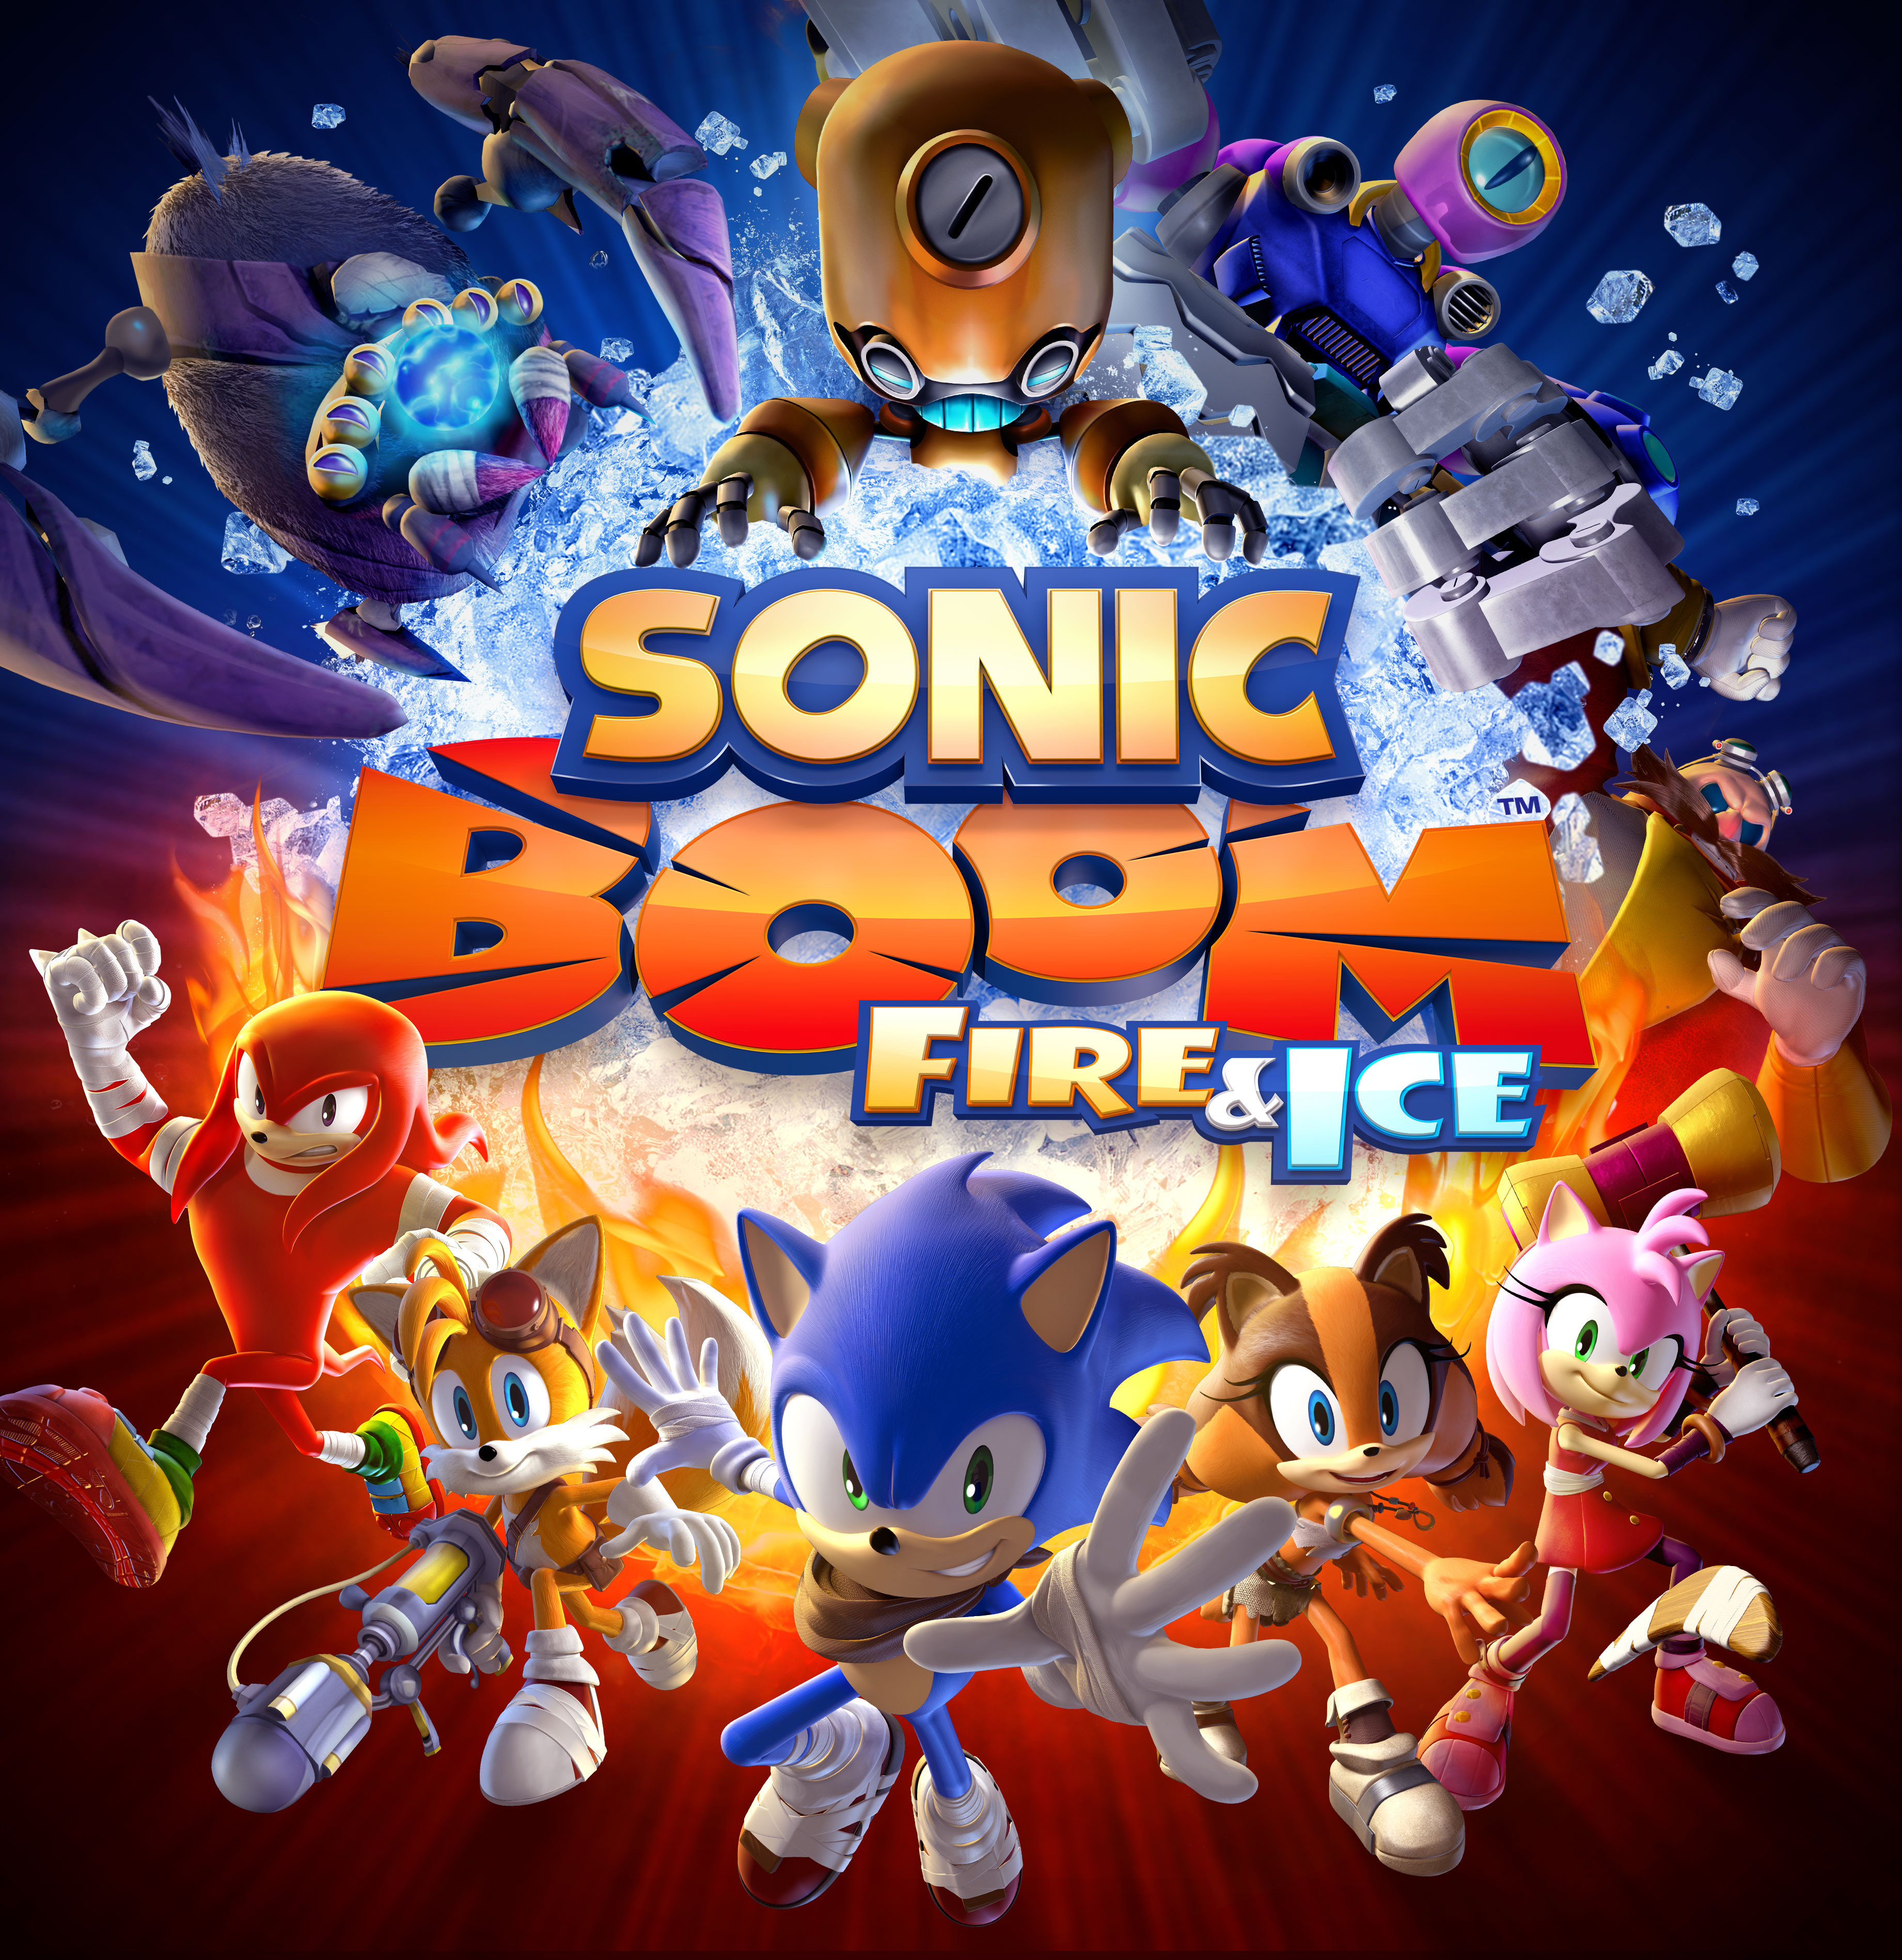 SONiC BOOM 2015 Special Announcement - SONiC 102.9